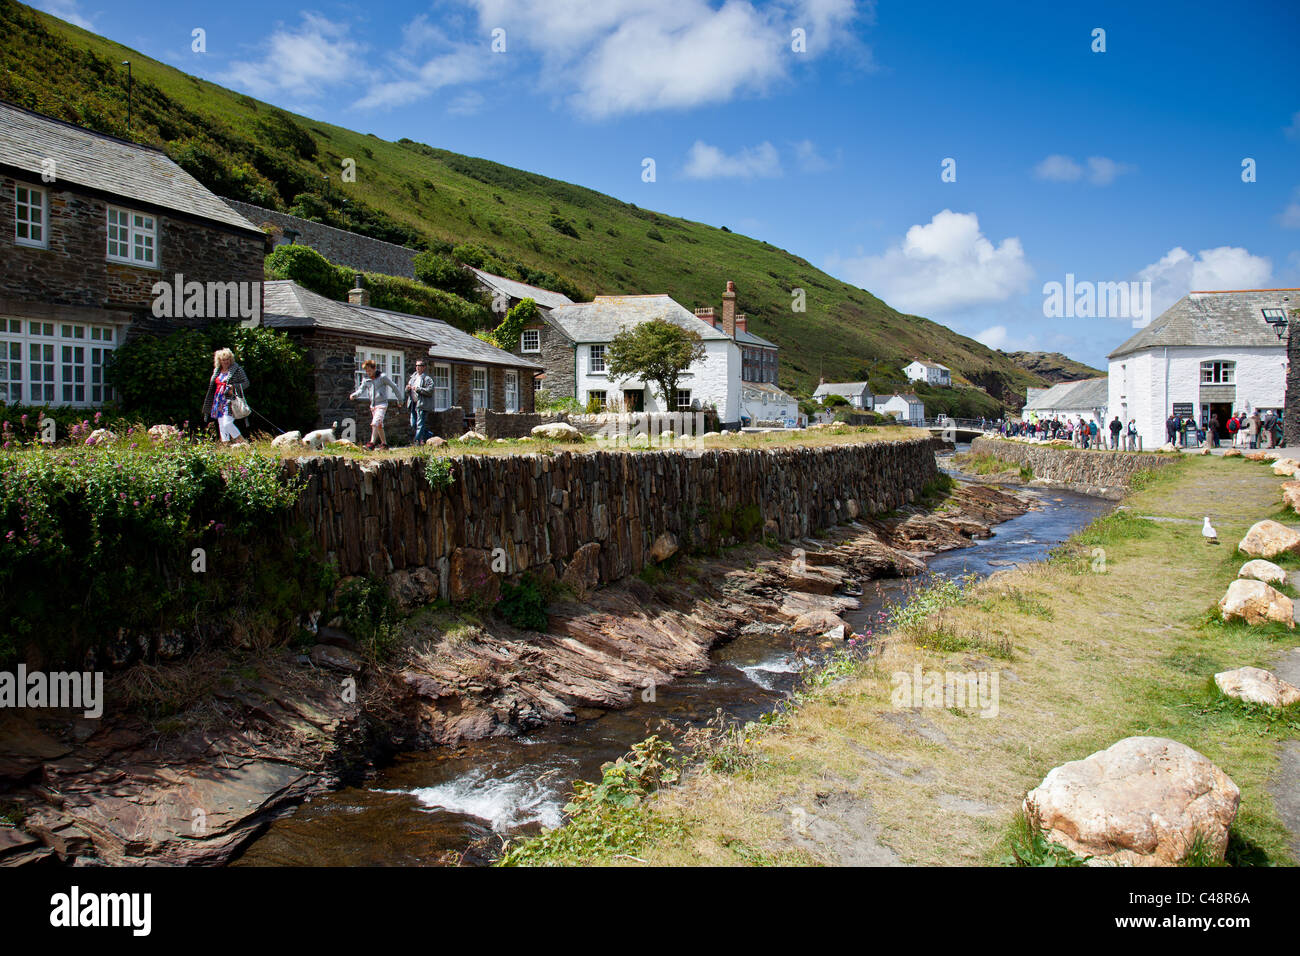 Mill Leat flowing beneath cottages in Boscastle, Cornwall - Stock Image